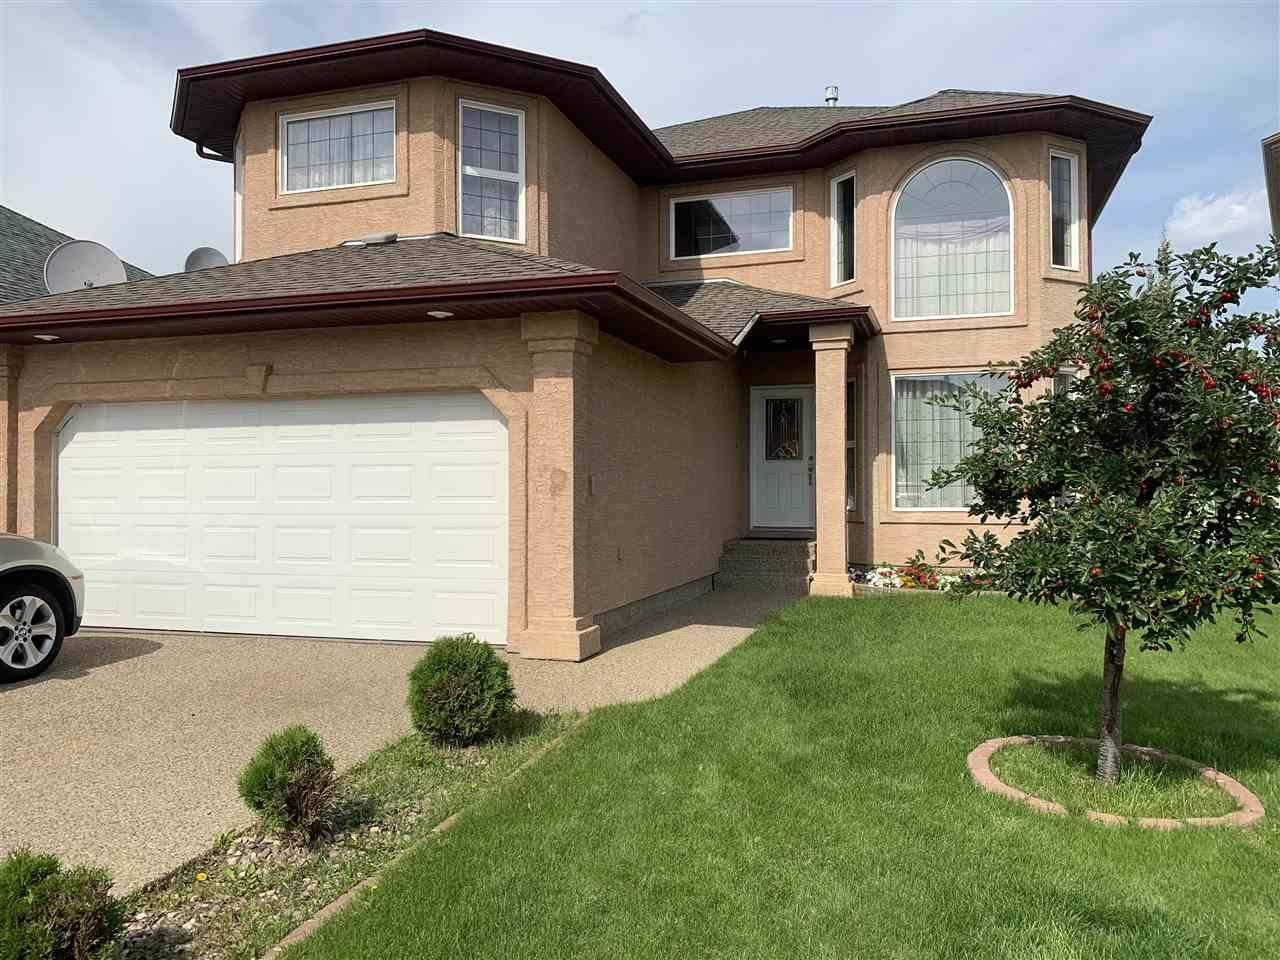 House for sale at 20712 90 Ave Nw Edmonton Alberta - MLS: E4169886